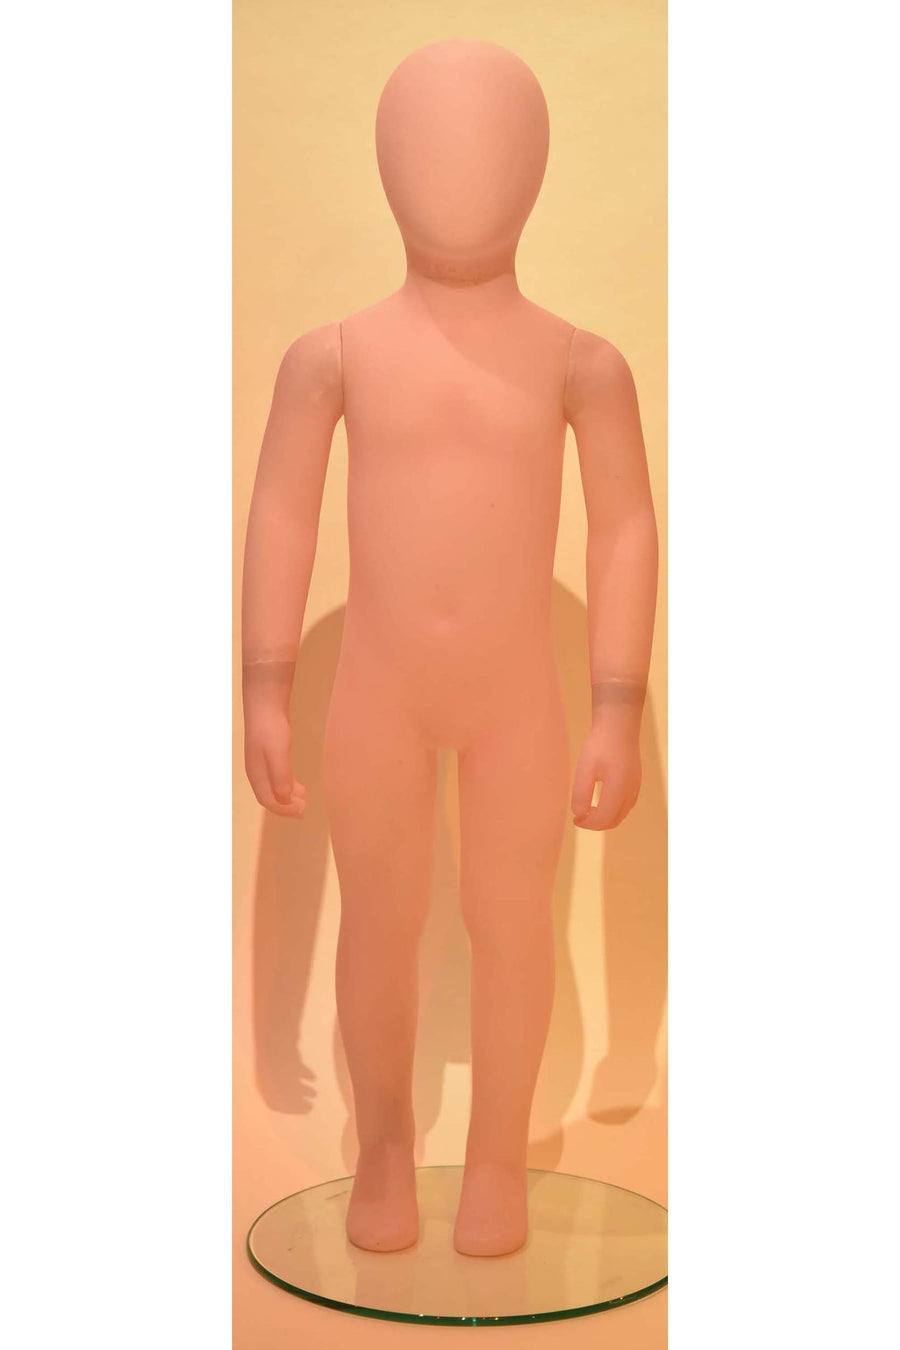 frosted pink kids mannequin with blank face and arms at sides